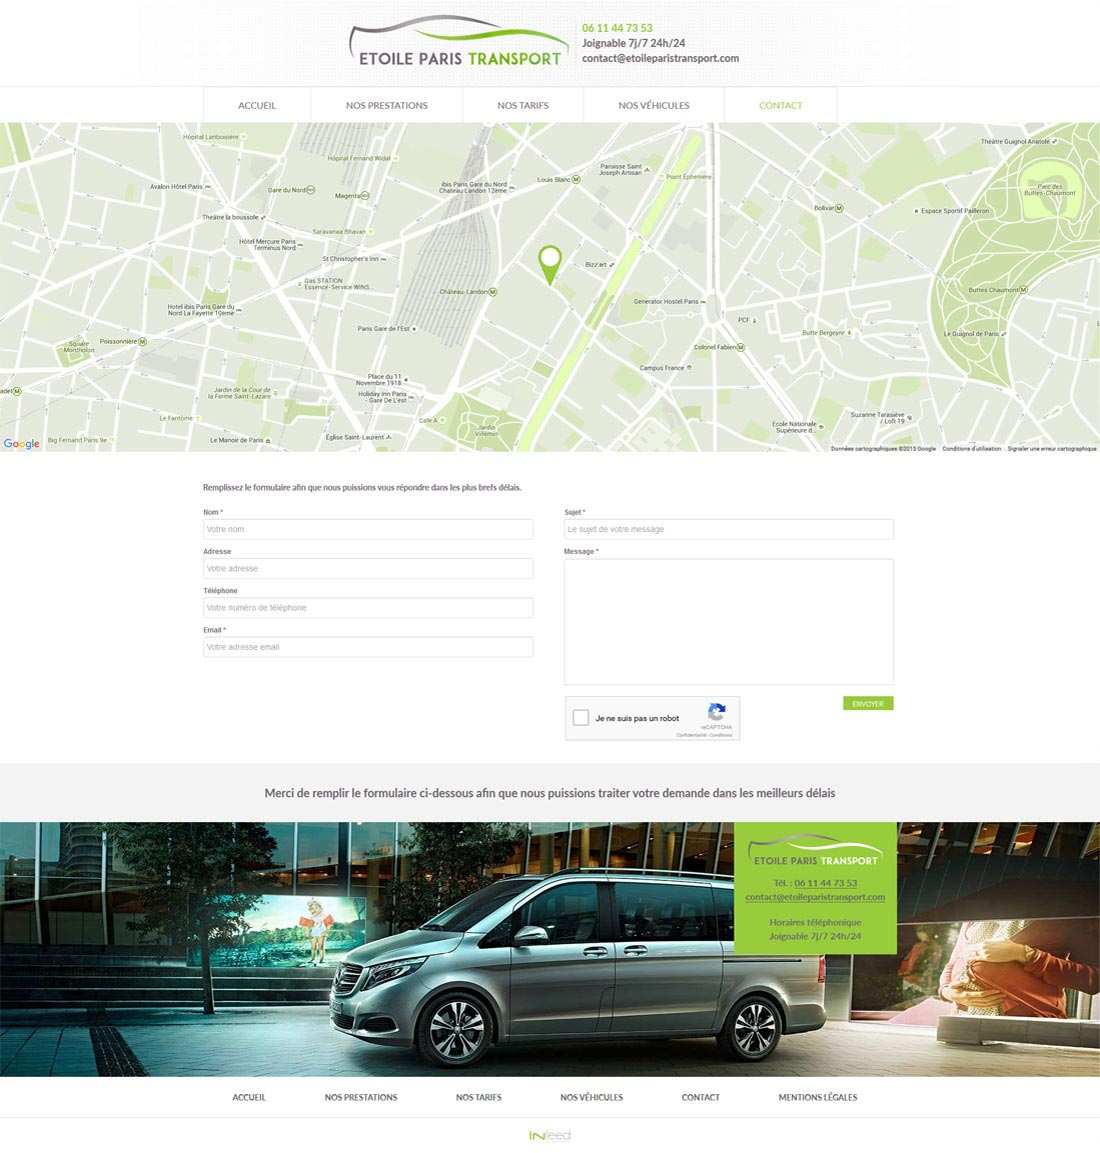 Transport de personnes page contact